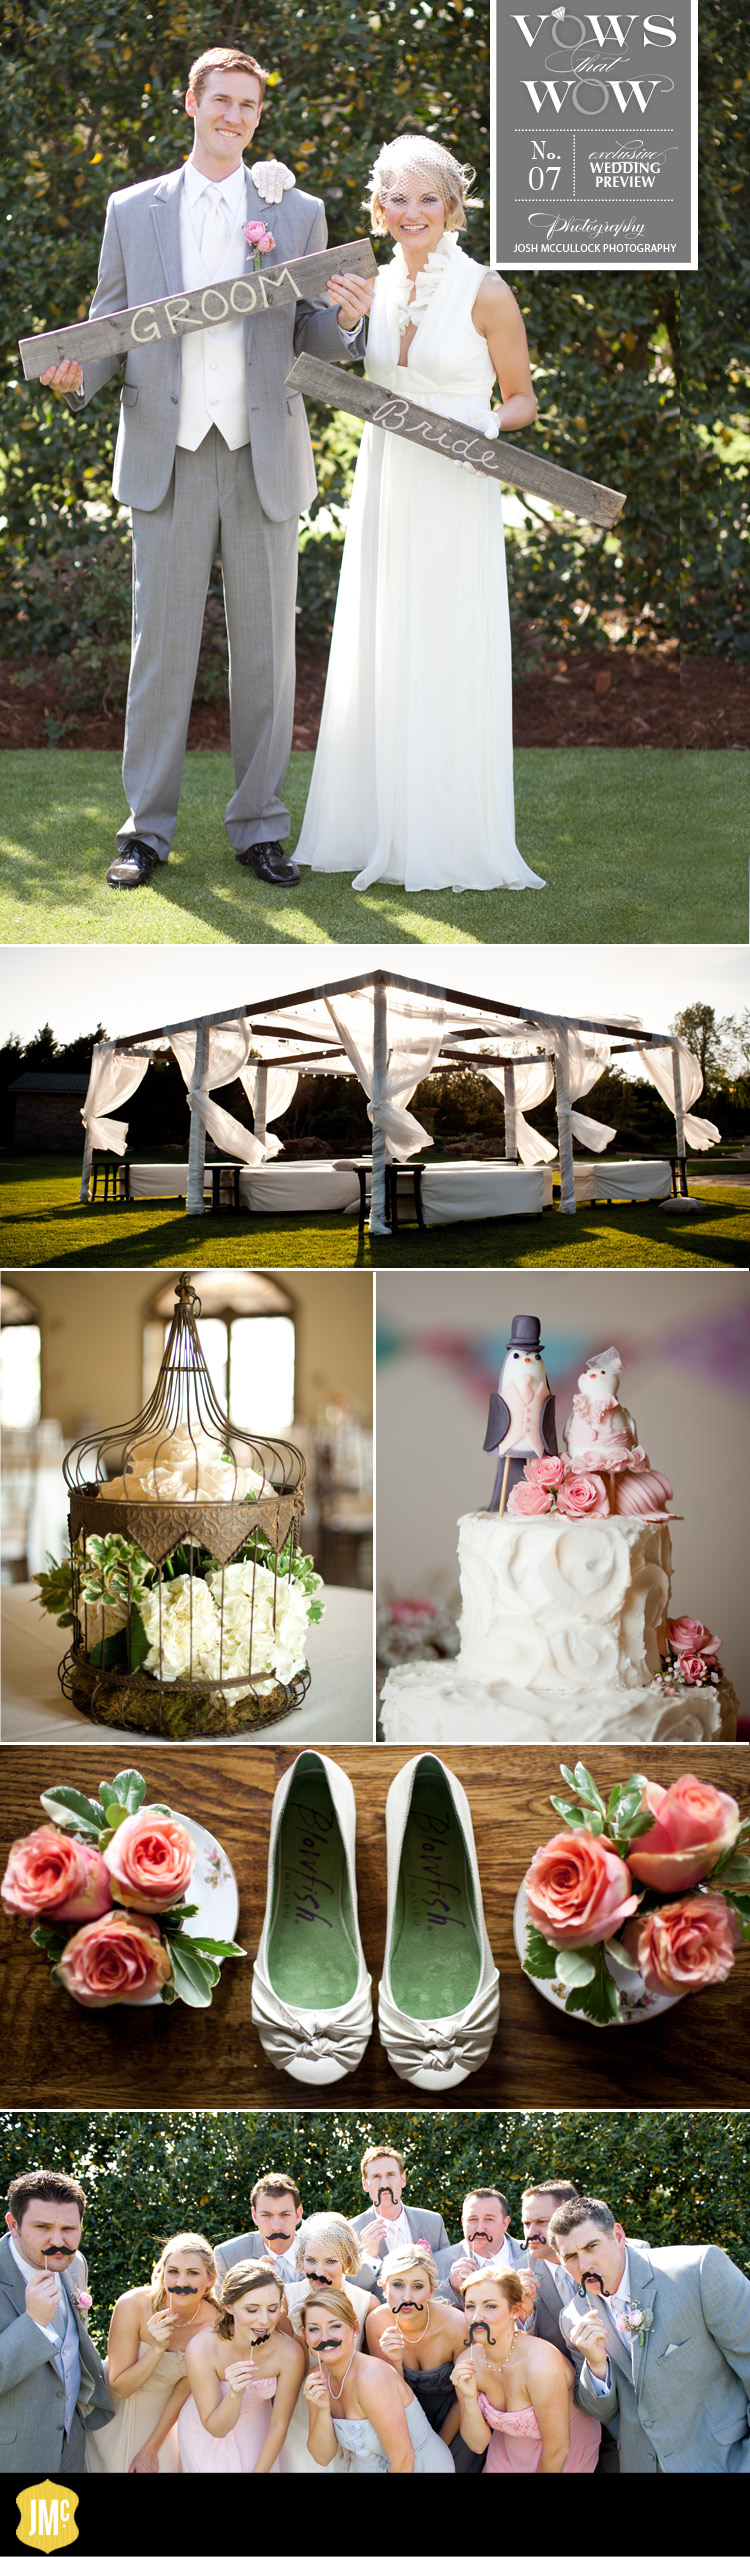 vows that wow–no 7–josh mccullock photography